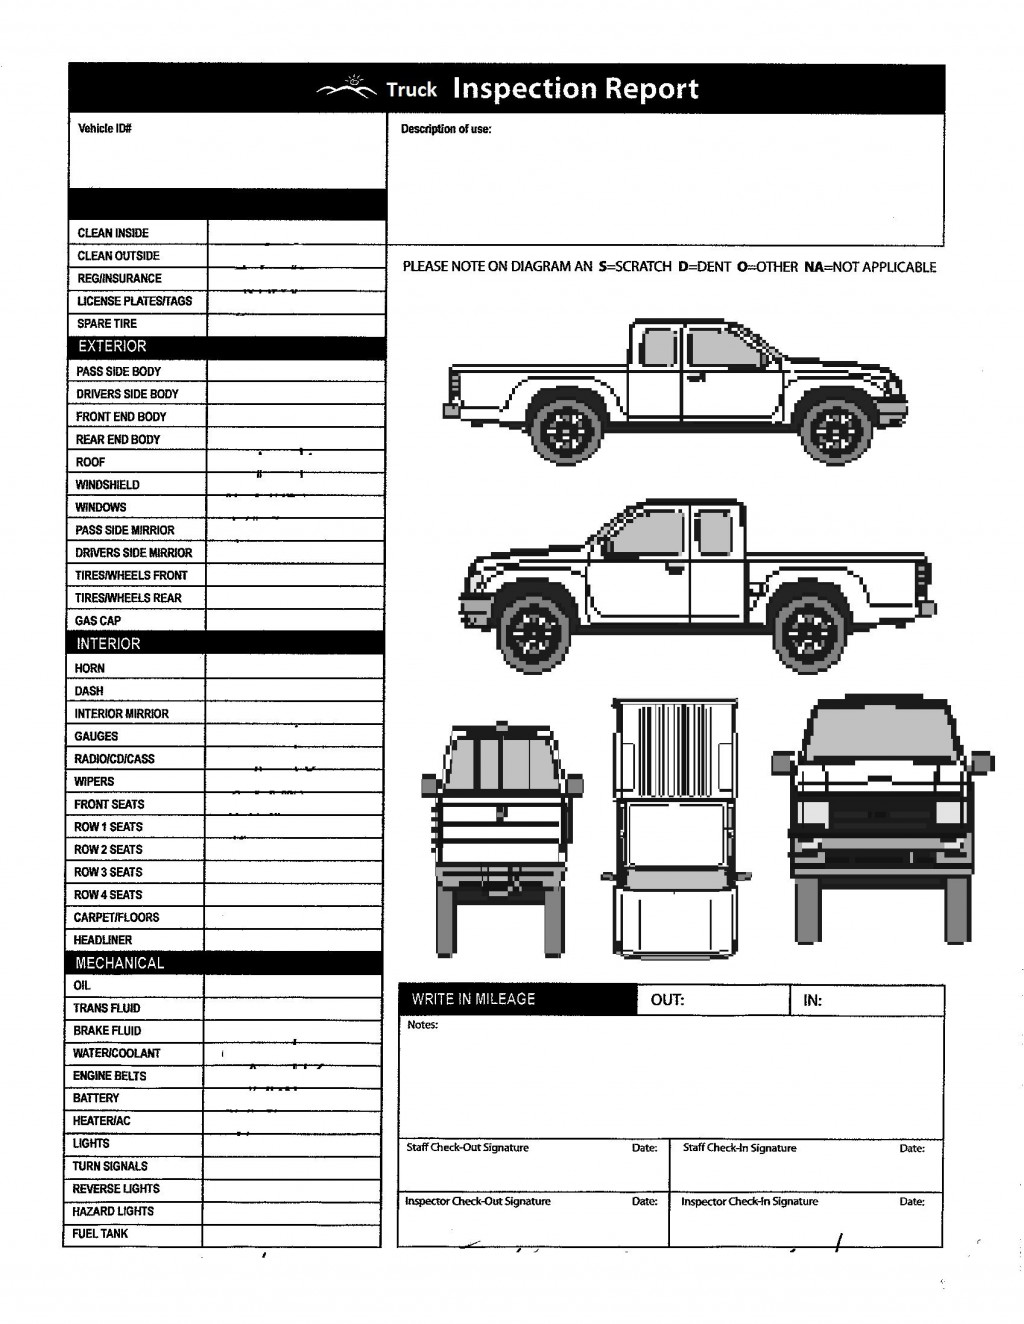 008 Phenomenal Truck Inspection Form Template Image  Commercial Vehicle Maintenance FreeLarge